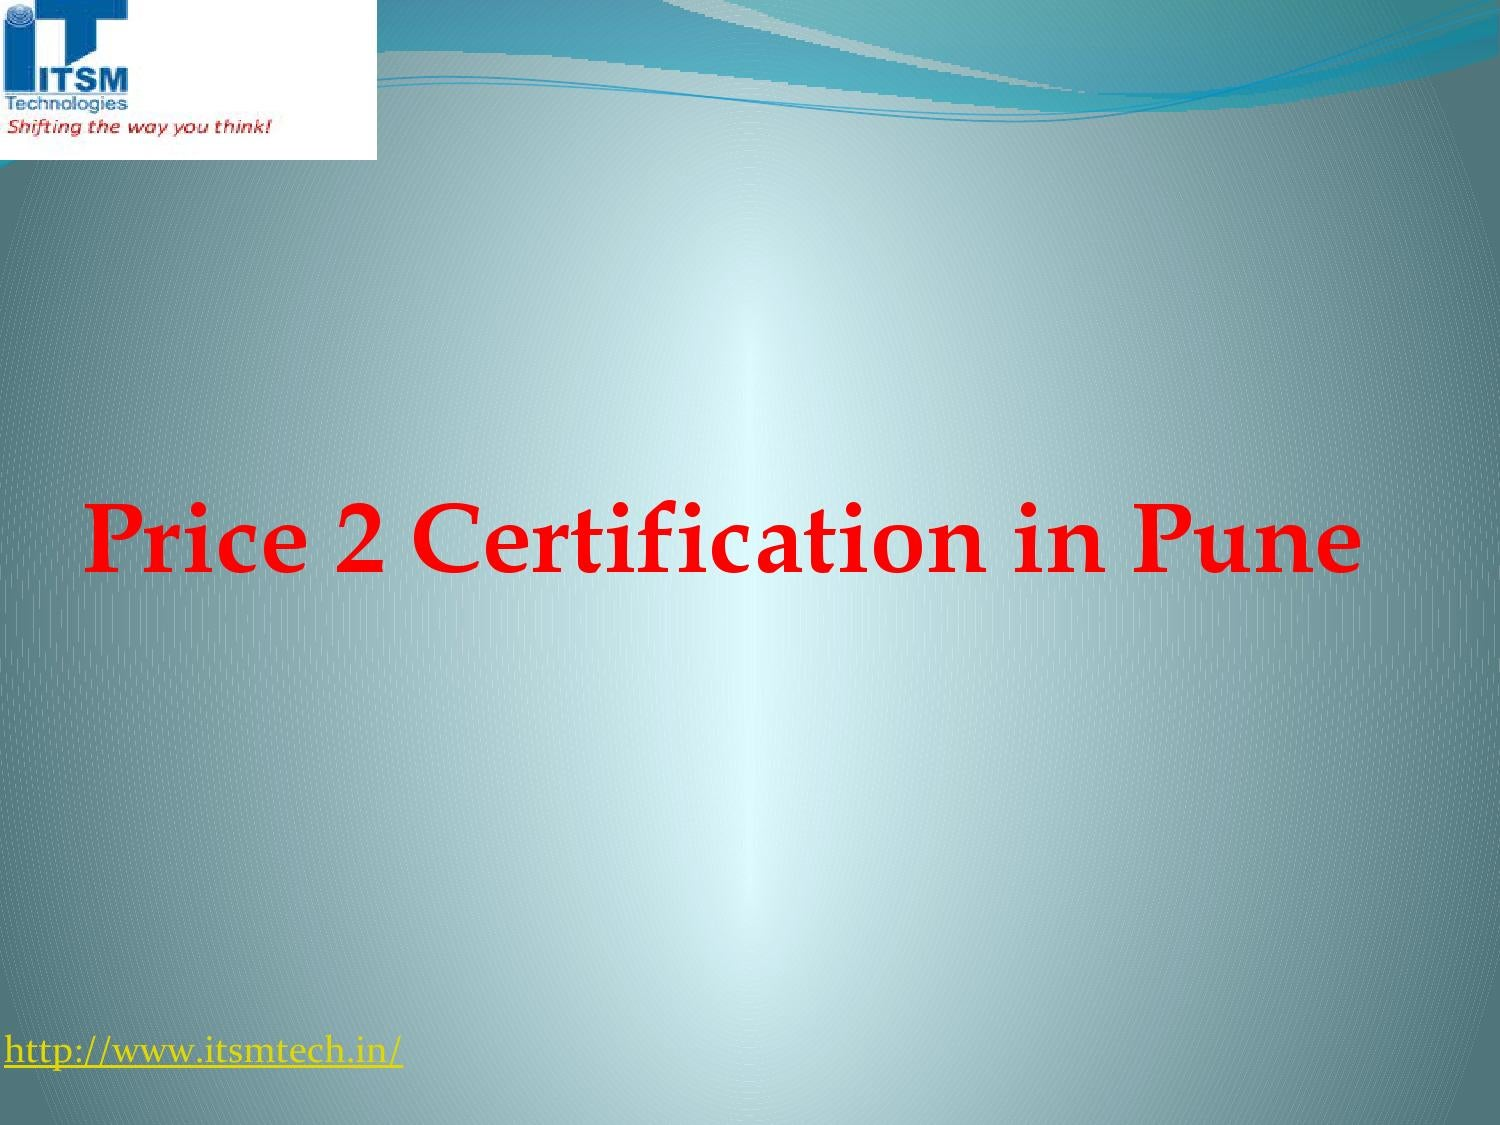 Prince2 certification in pune by itsmtech issuu 1betcityfo Image collections